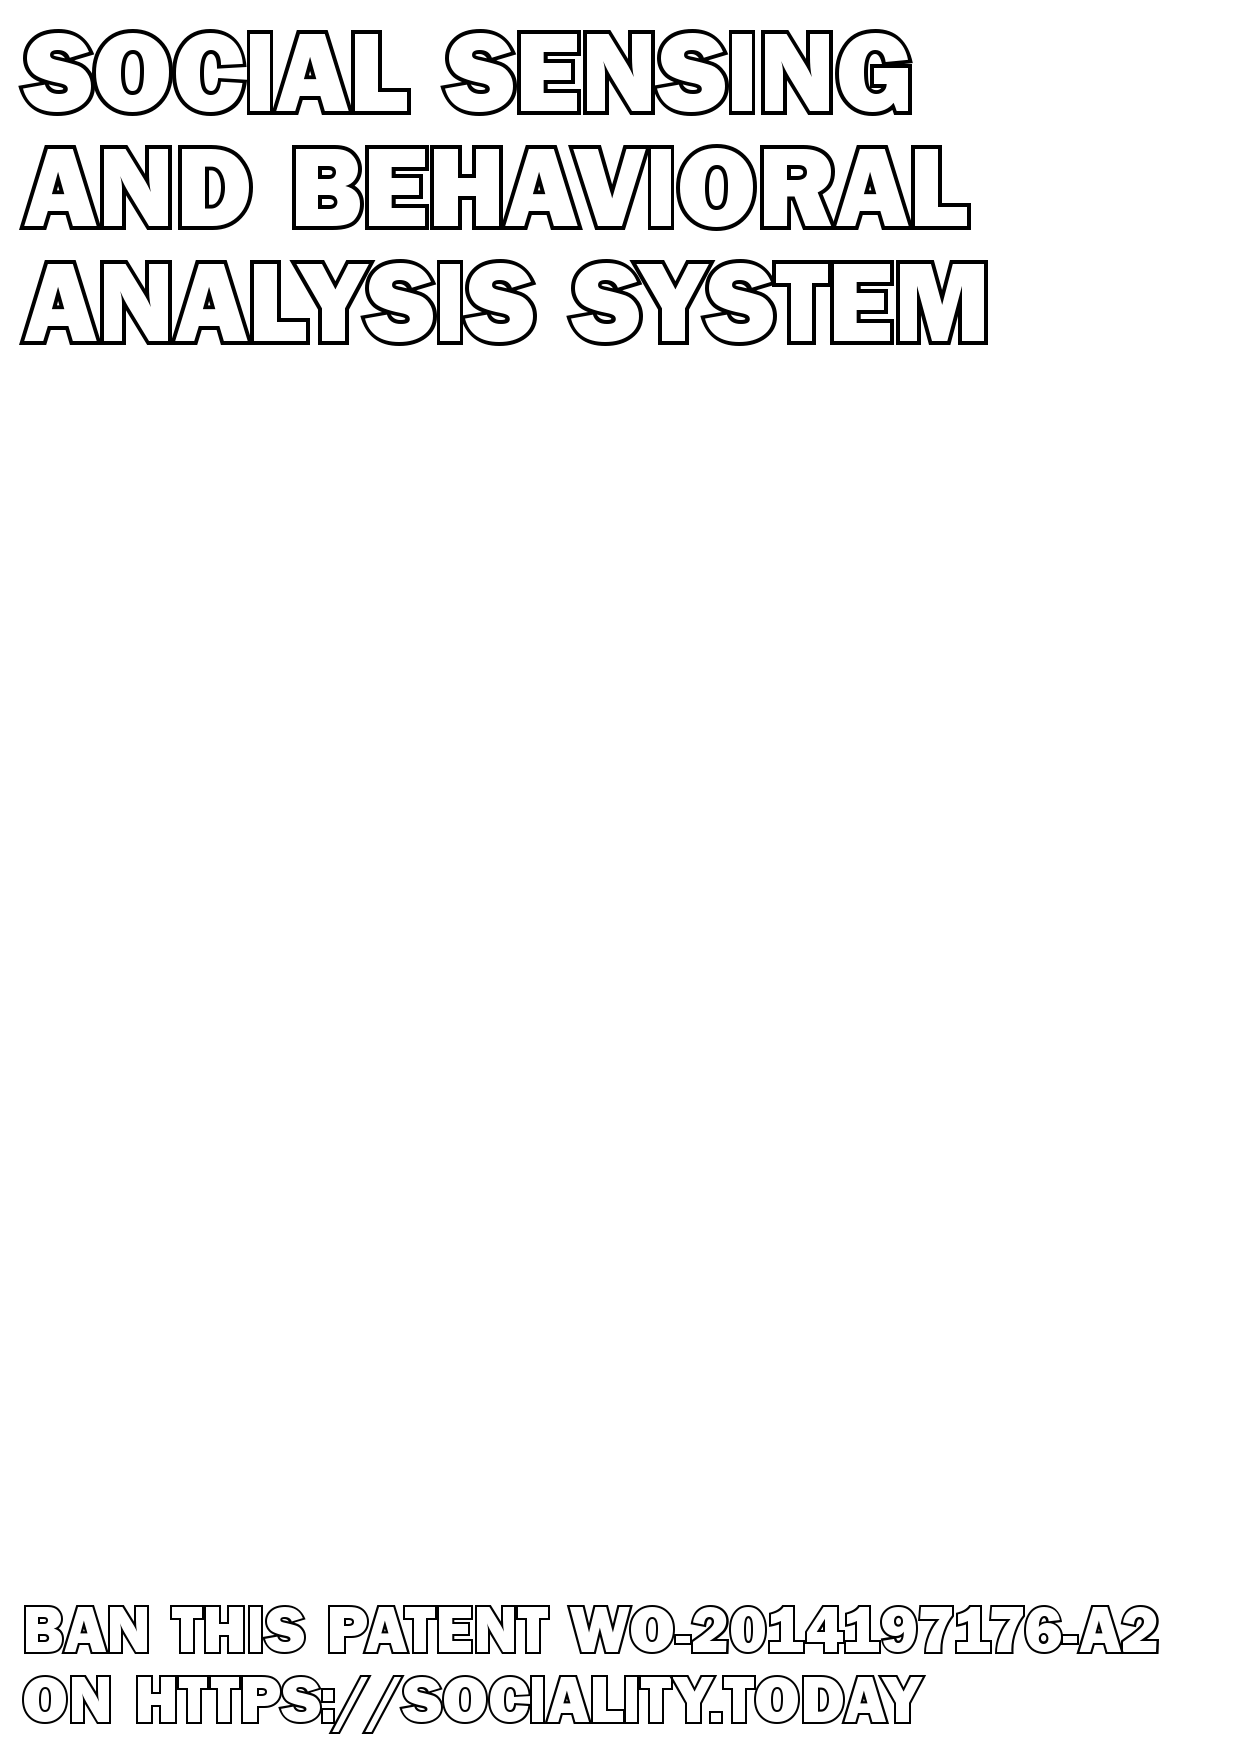 Social sensing and behavioral analysis system  - WO-2014197176-A2